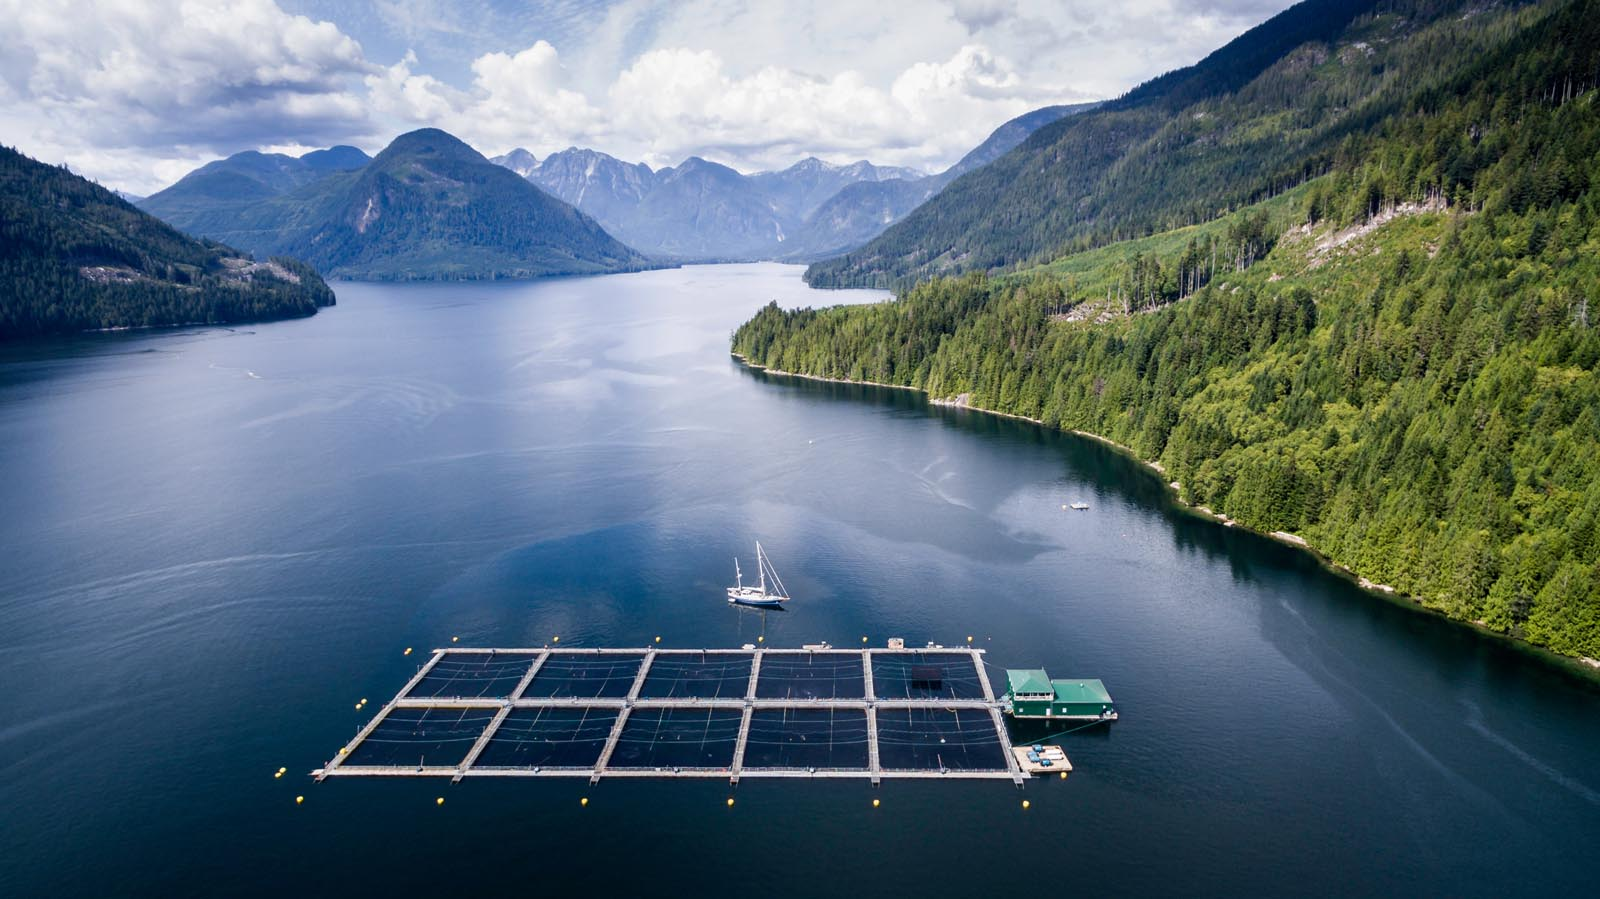 Something fishy open net fish farms are destroying bc s wild salmon populations mountain life - Trout farming business family mountains ...